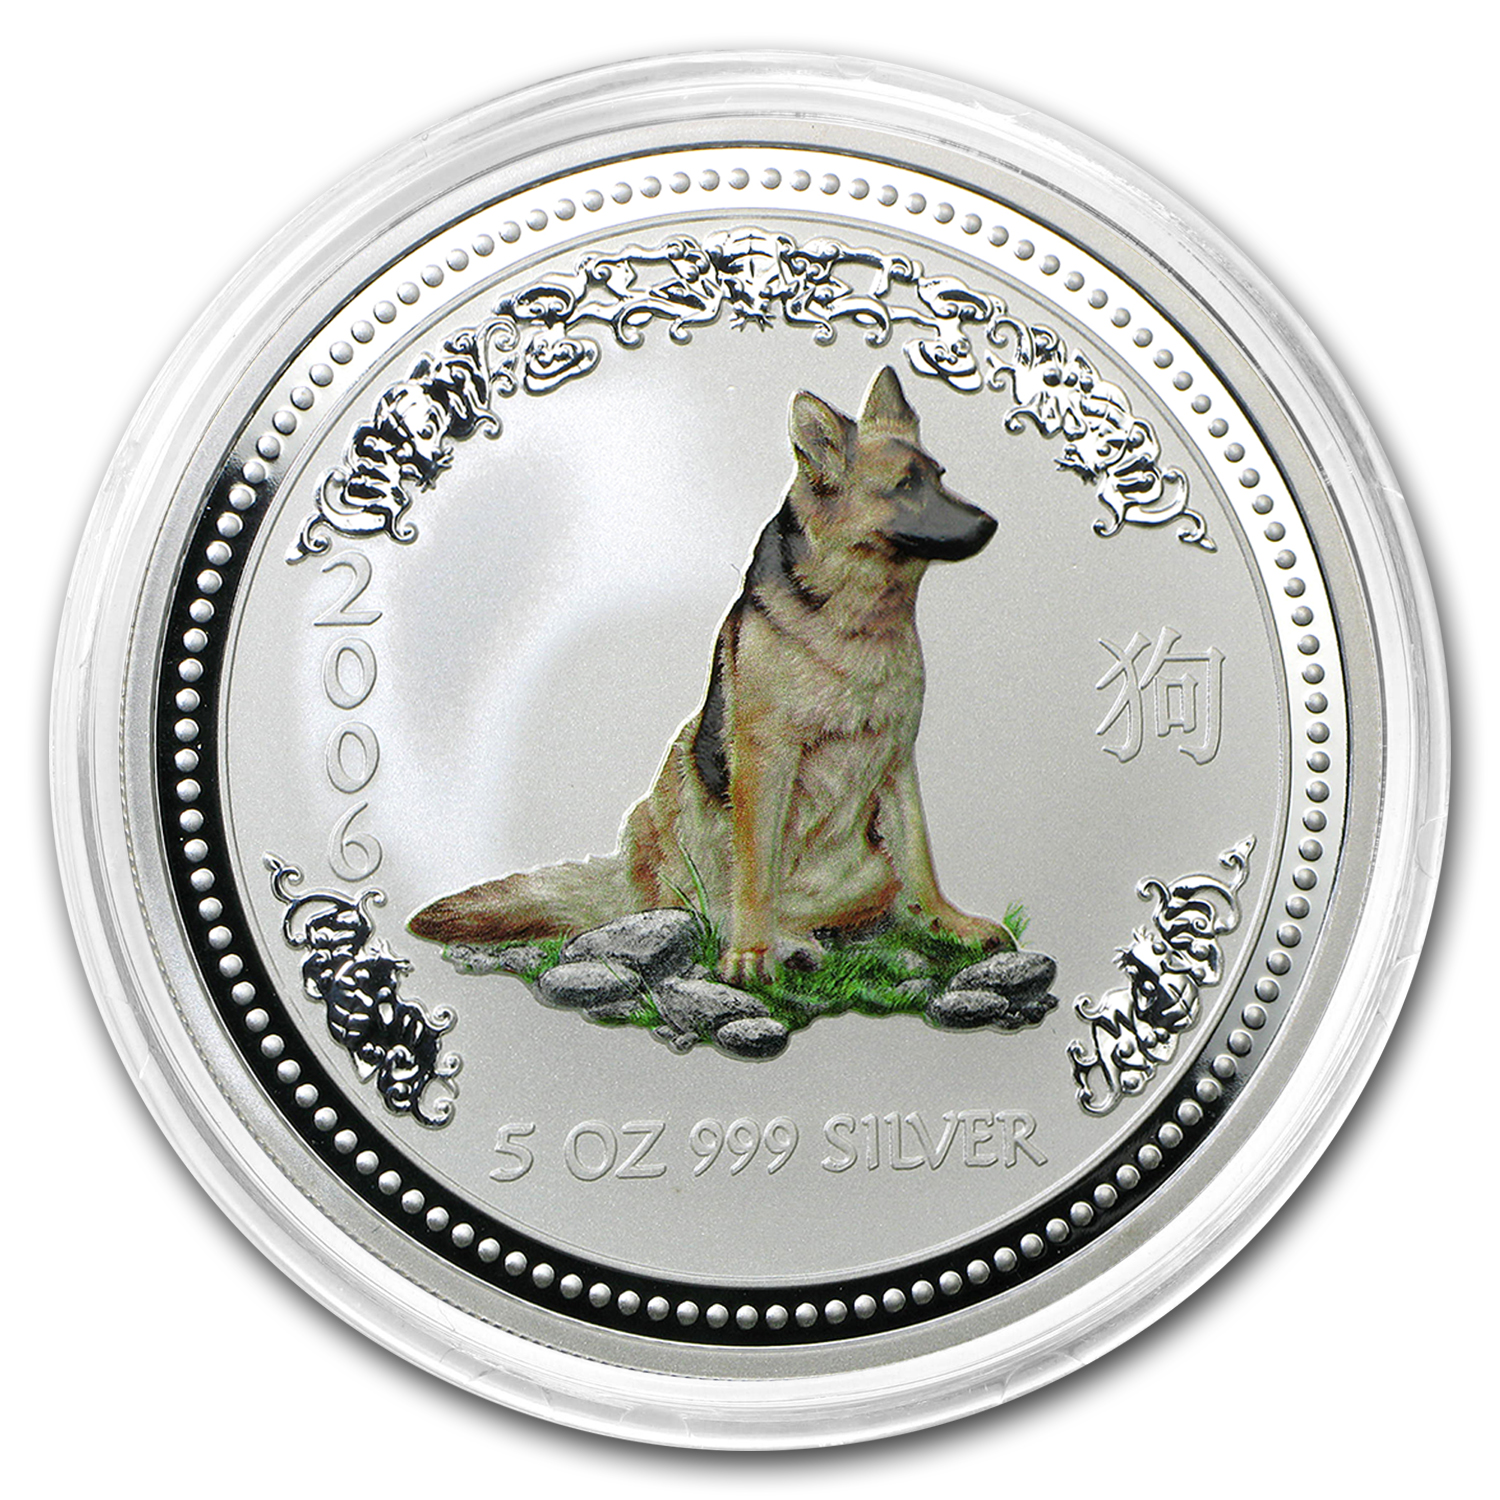 2006 5 oz Silver Lunar Year of the Dog (Series I) Colorized